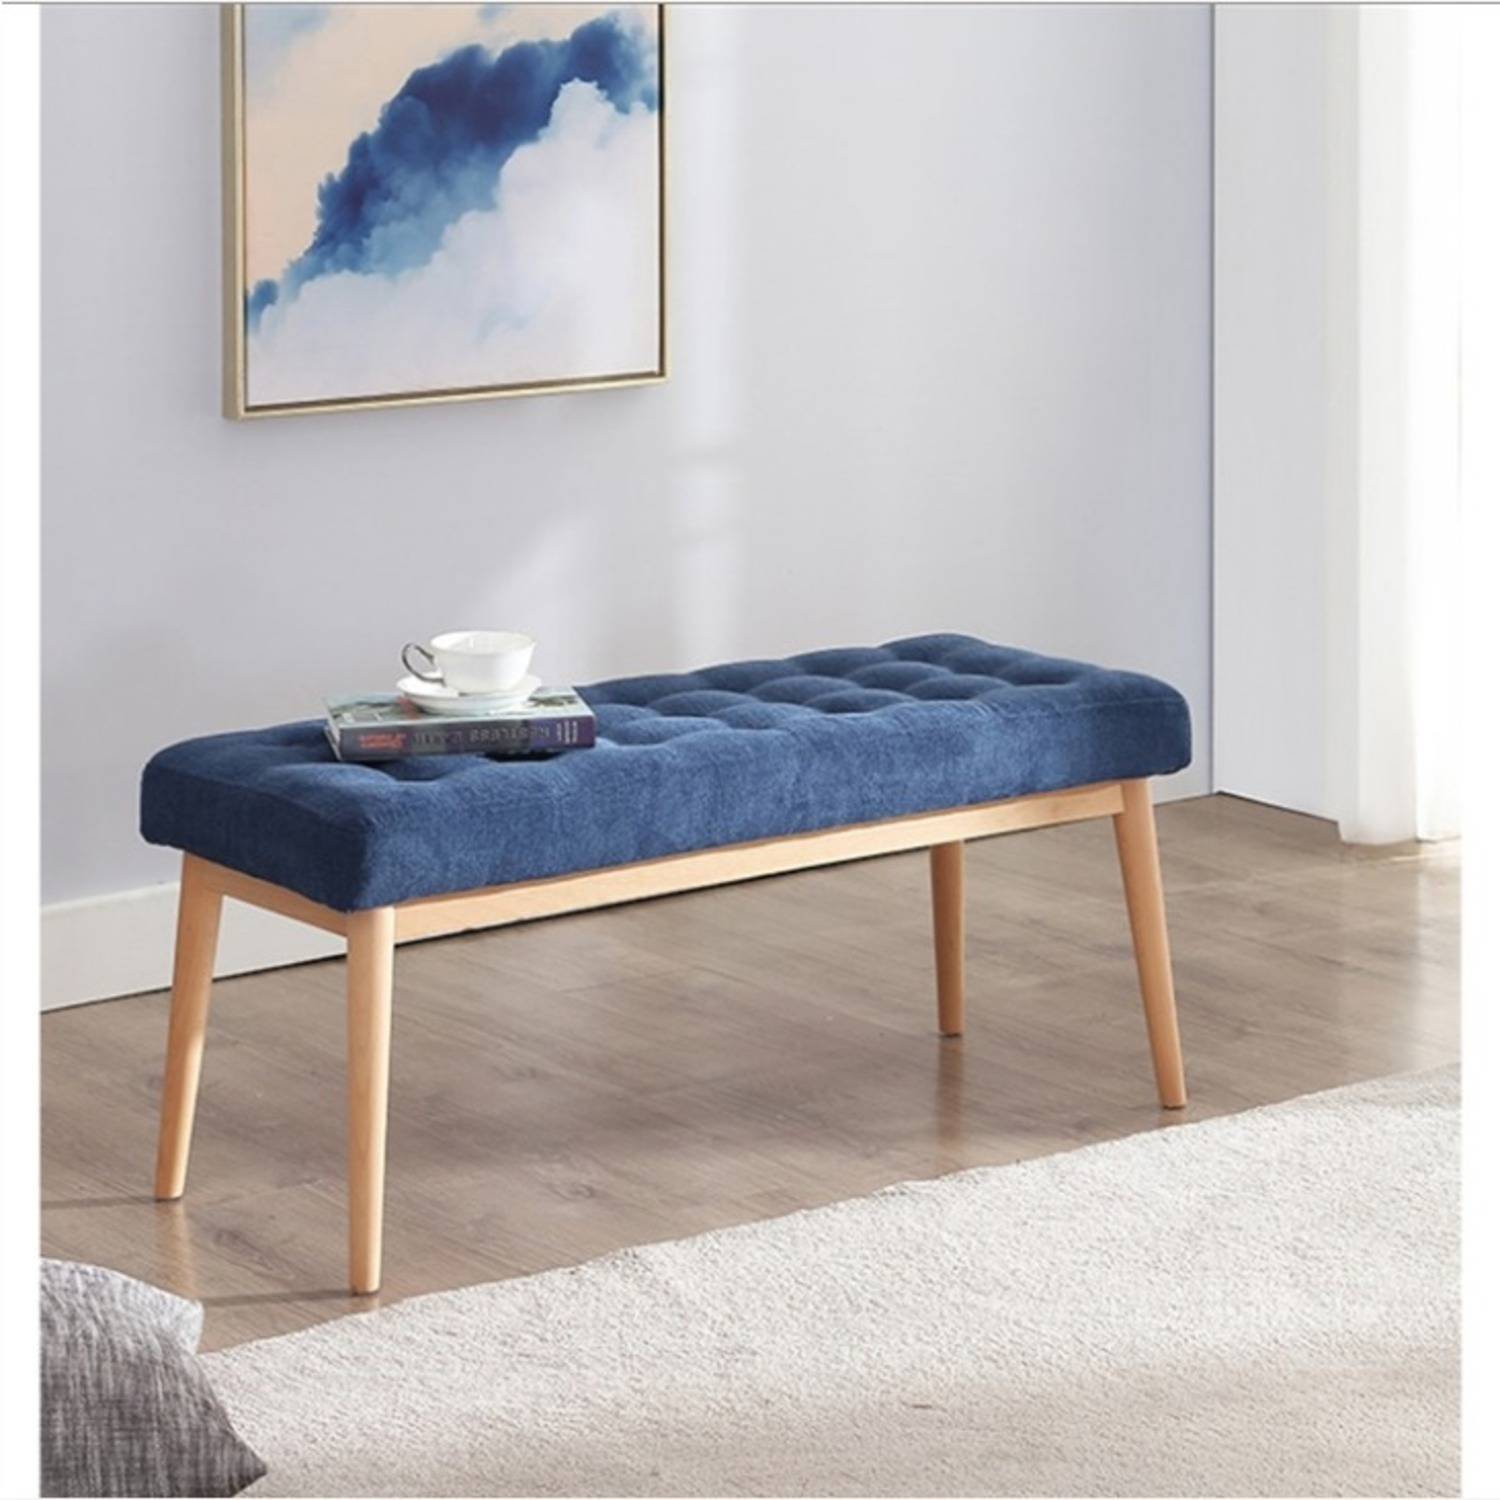 Bench In Blue Cotton Crafted W/ Beech Wood Base - image-1